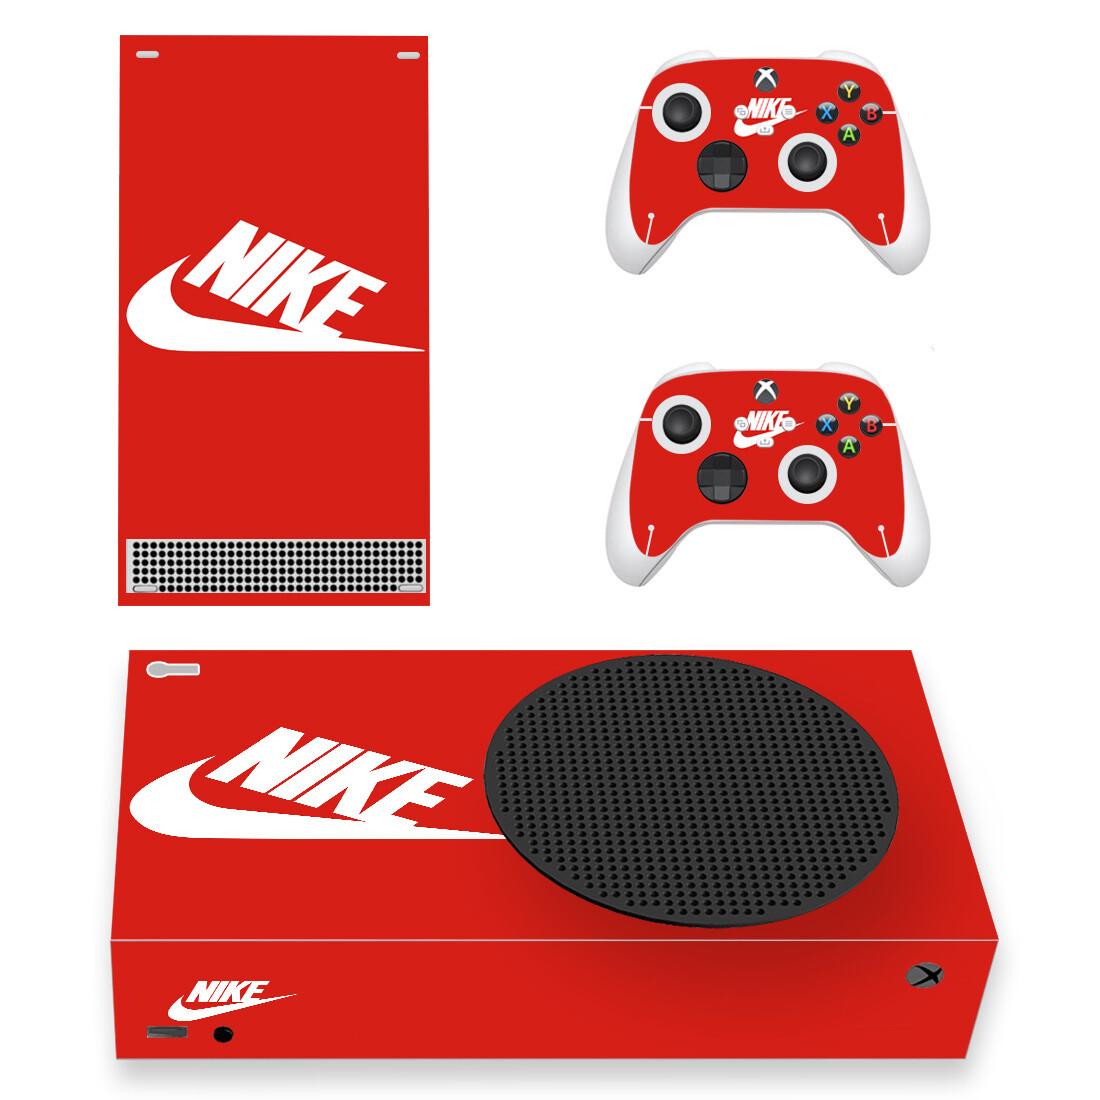 Nike Skin Sticker Decal For Xbox Series S